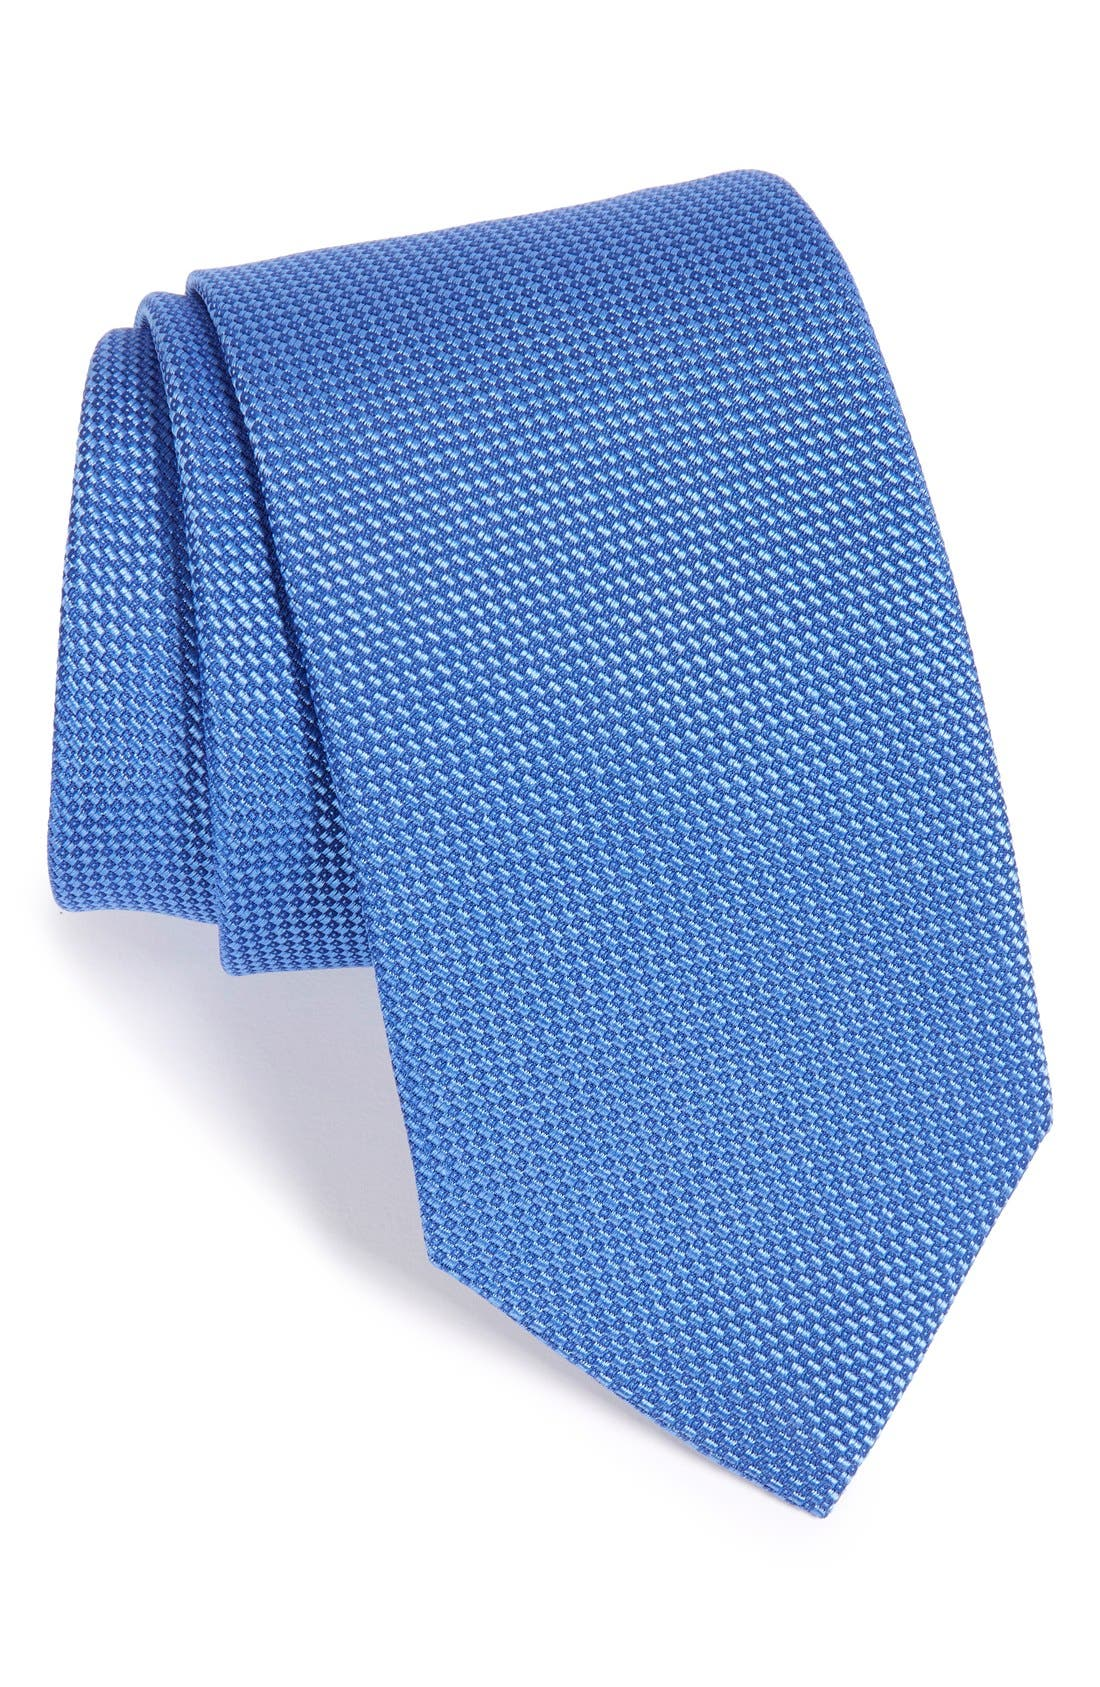 Solid Silk Tie,                             Main thumbnail 1, color,                             NAVY